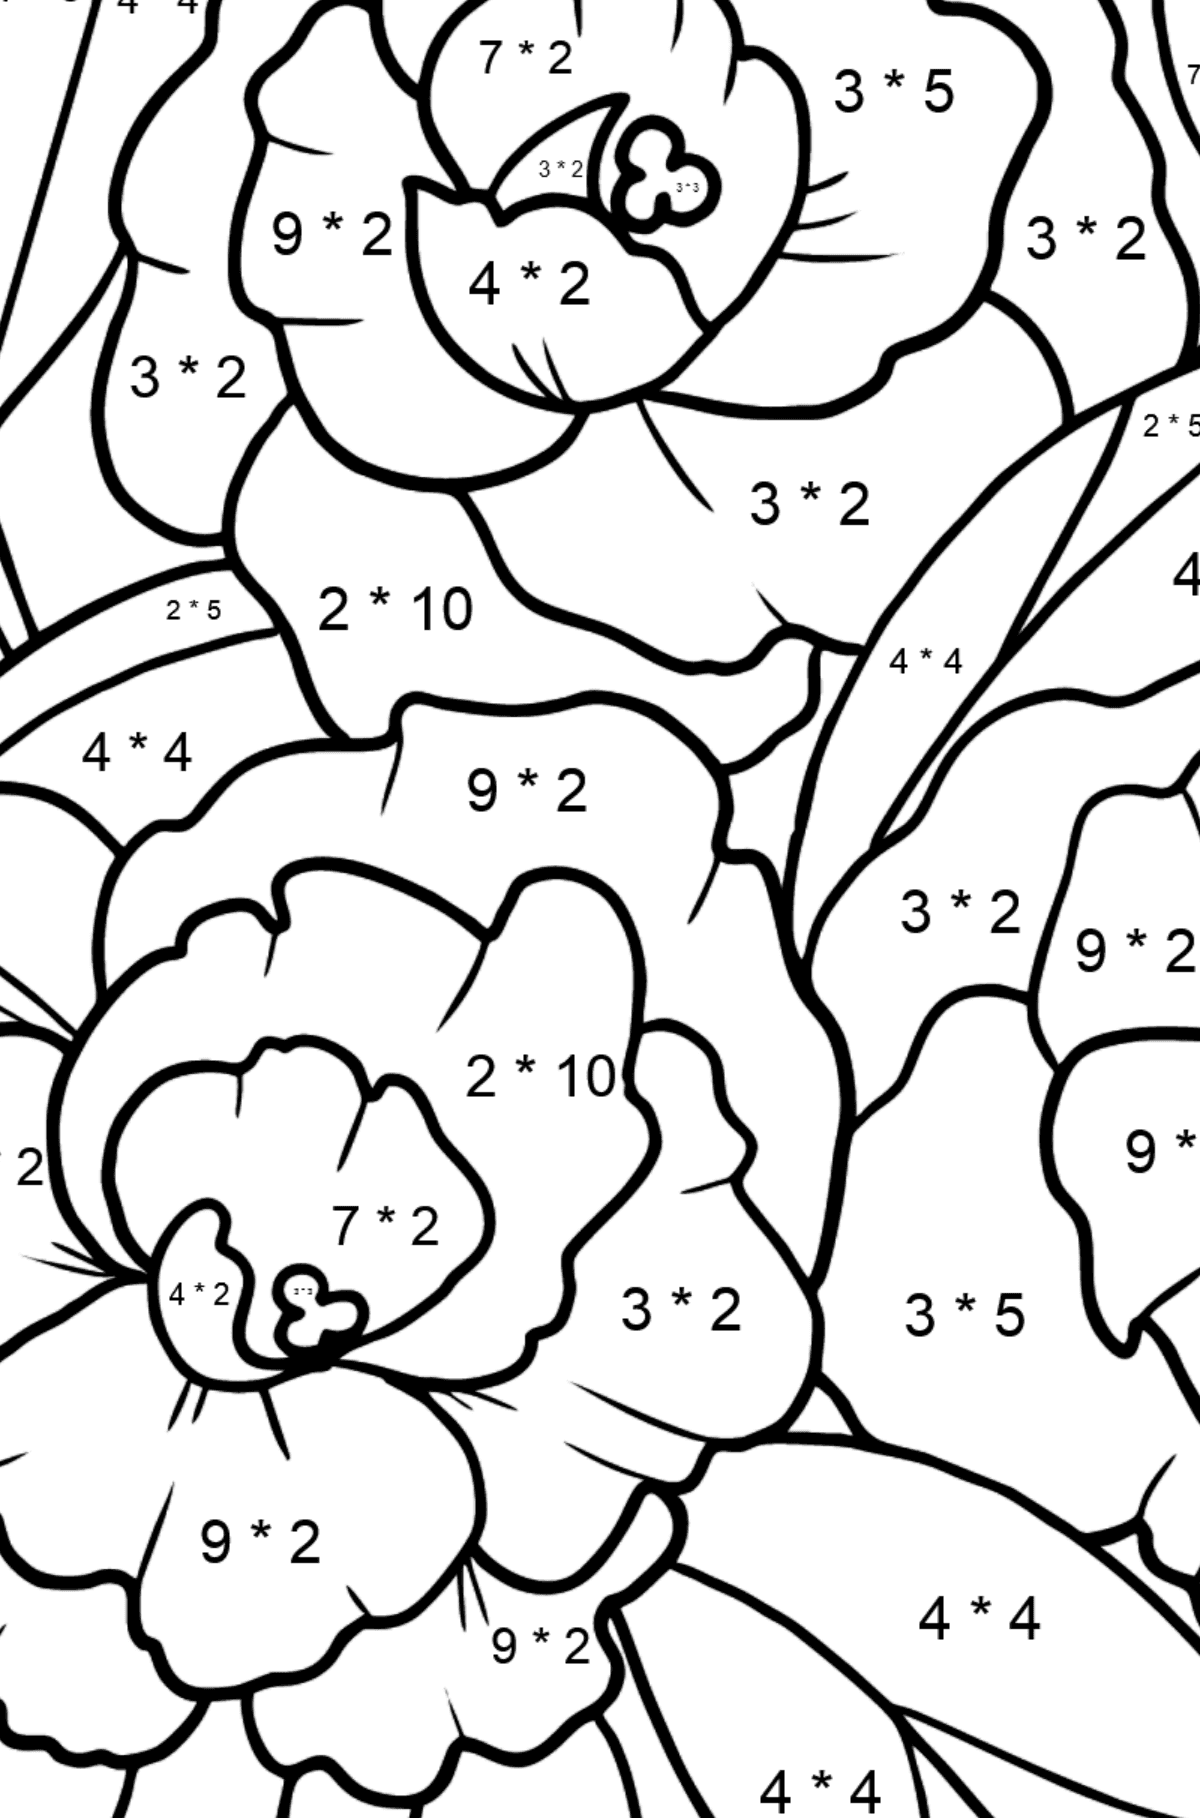 Flower Coloring Page - A Peony Blossom - Math Coloring - Multiplication for Kids